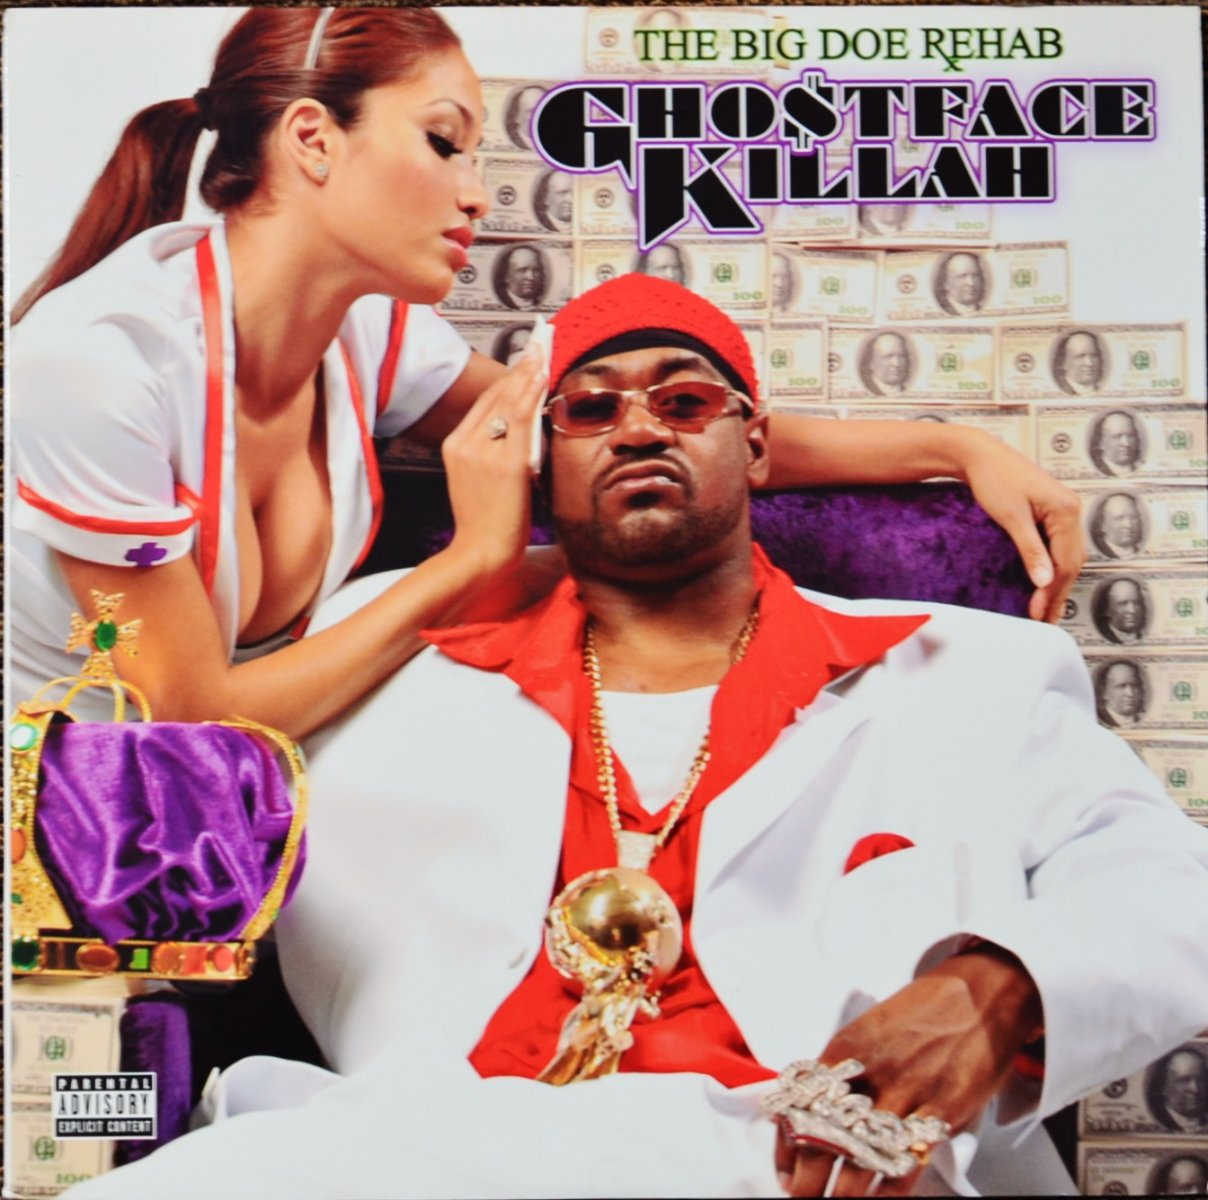 GHOSTFACE KILLAH ‎/ THE BIG DOE REHAB (2LP)